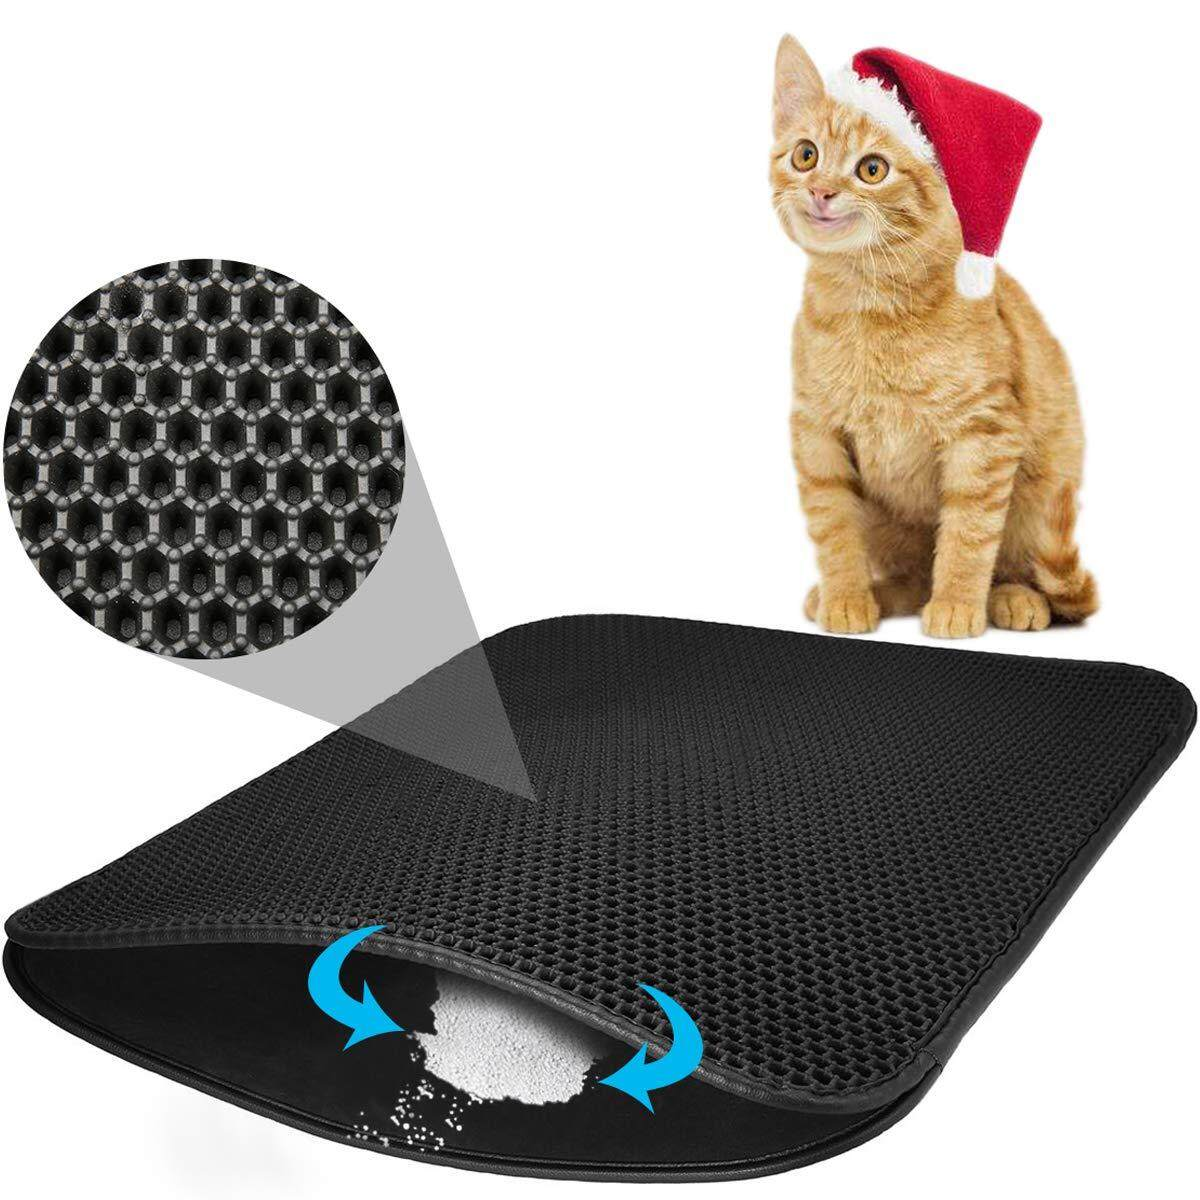 Cat Litter Mat Litter Trapping Litter Mat Honeycomb Double Layer Waterproof And Urine Proof Trapping Mat For Furniture/hooded Mat For Litter Box Easy Clean Traps Litter By Dragonlee.